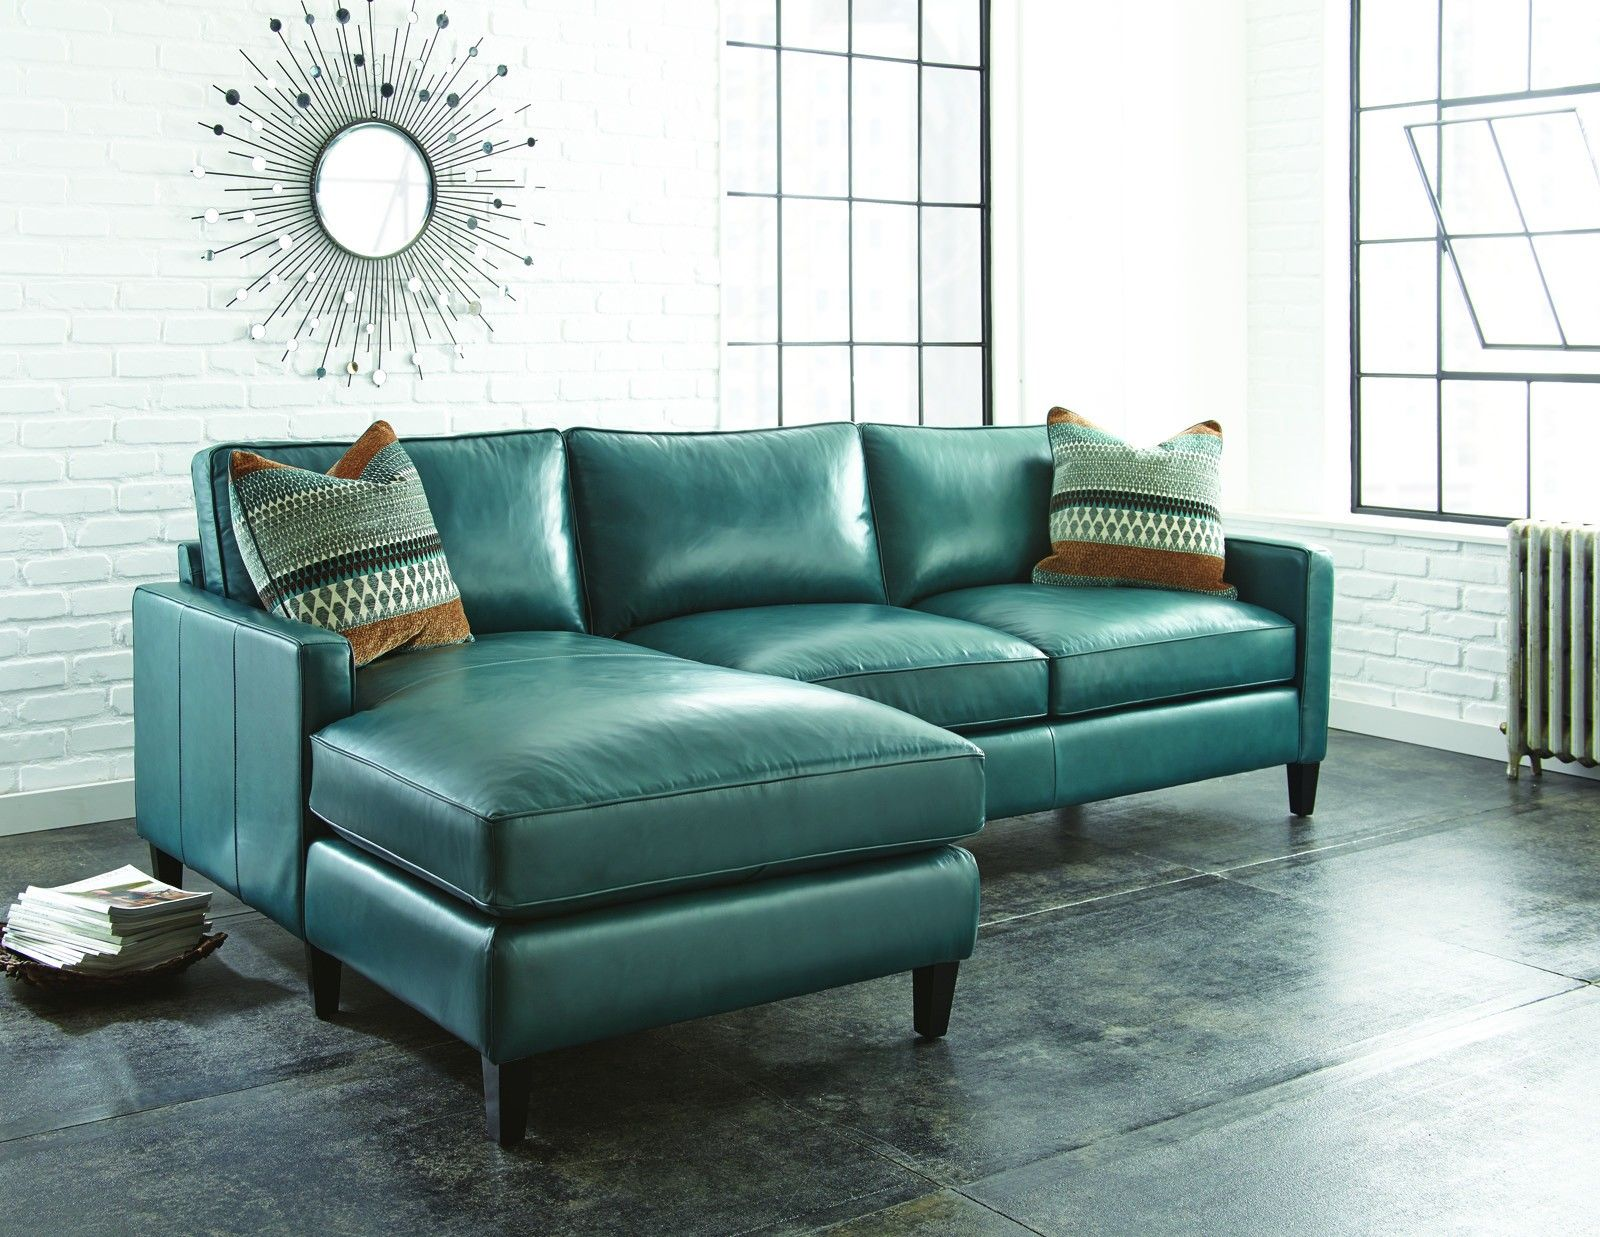 Best 25 Green leather sofas ideas on Pinterest